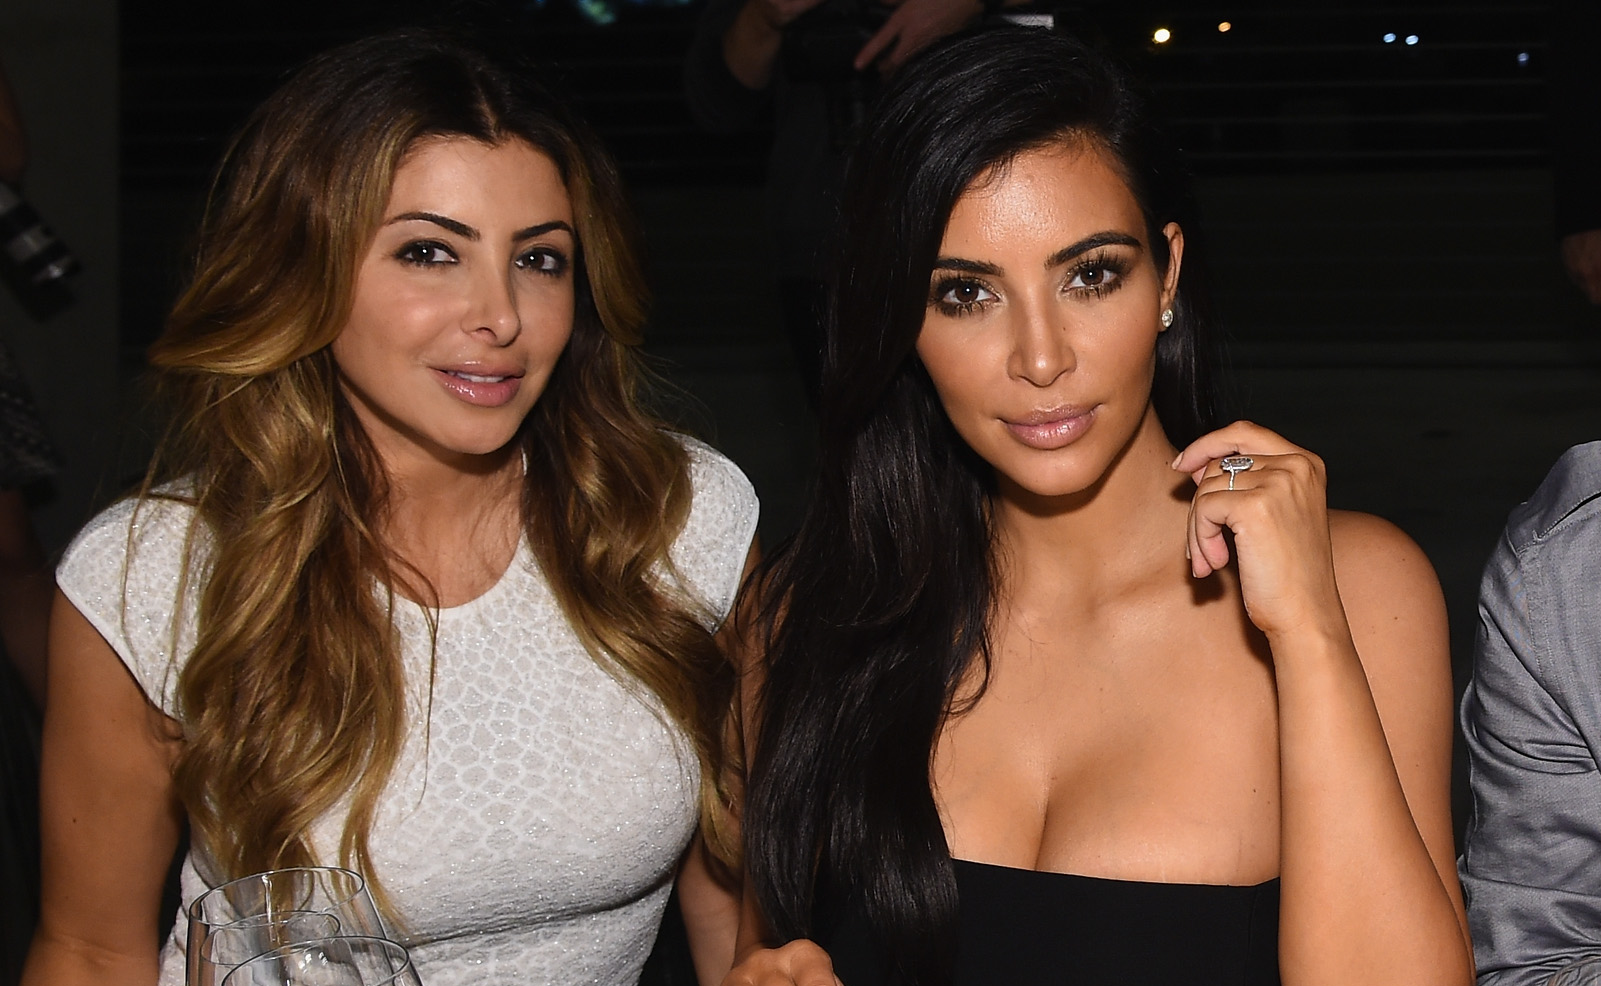 Kim Kardashian and Larsa Pippen Send Each Other Naked Photos 'All the Time'